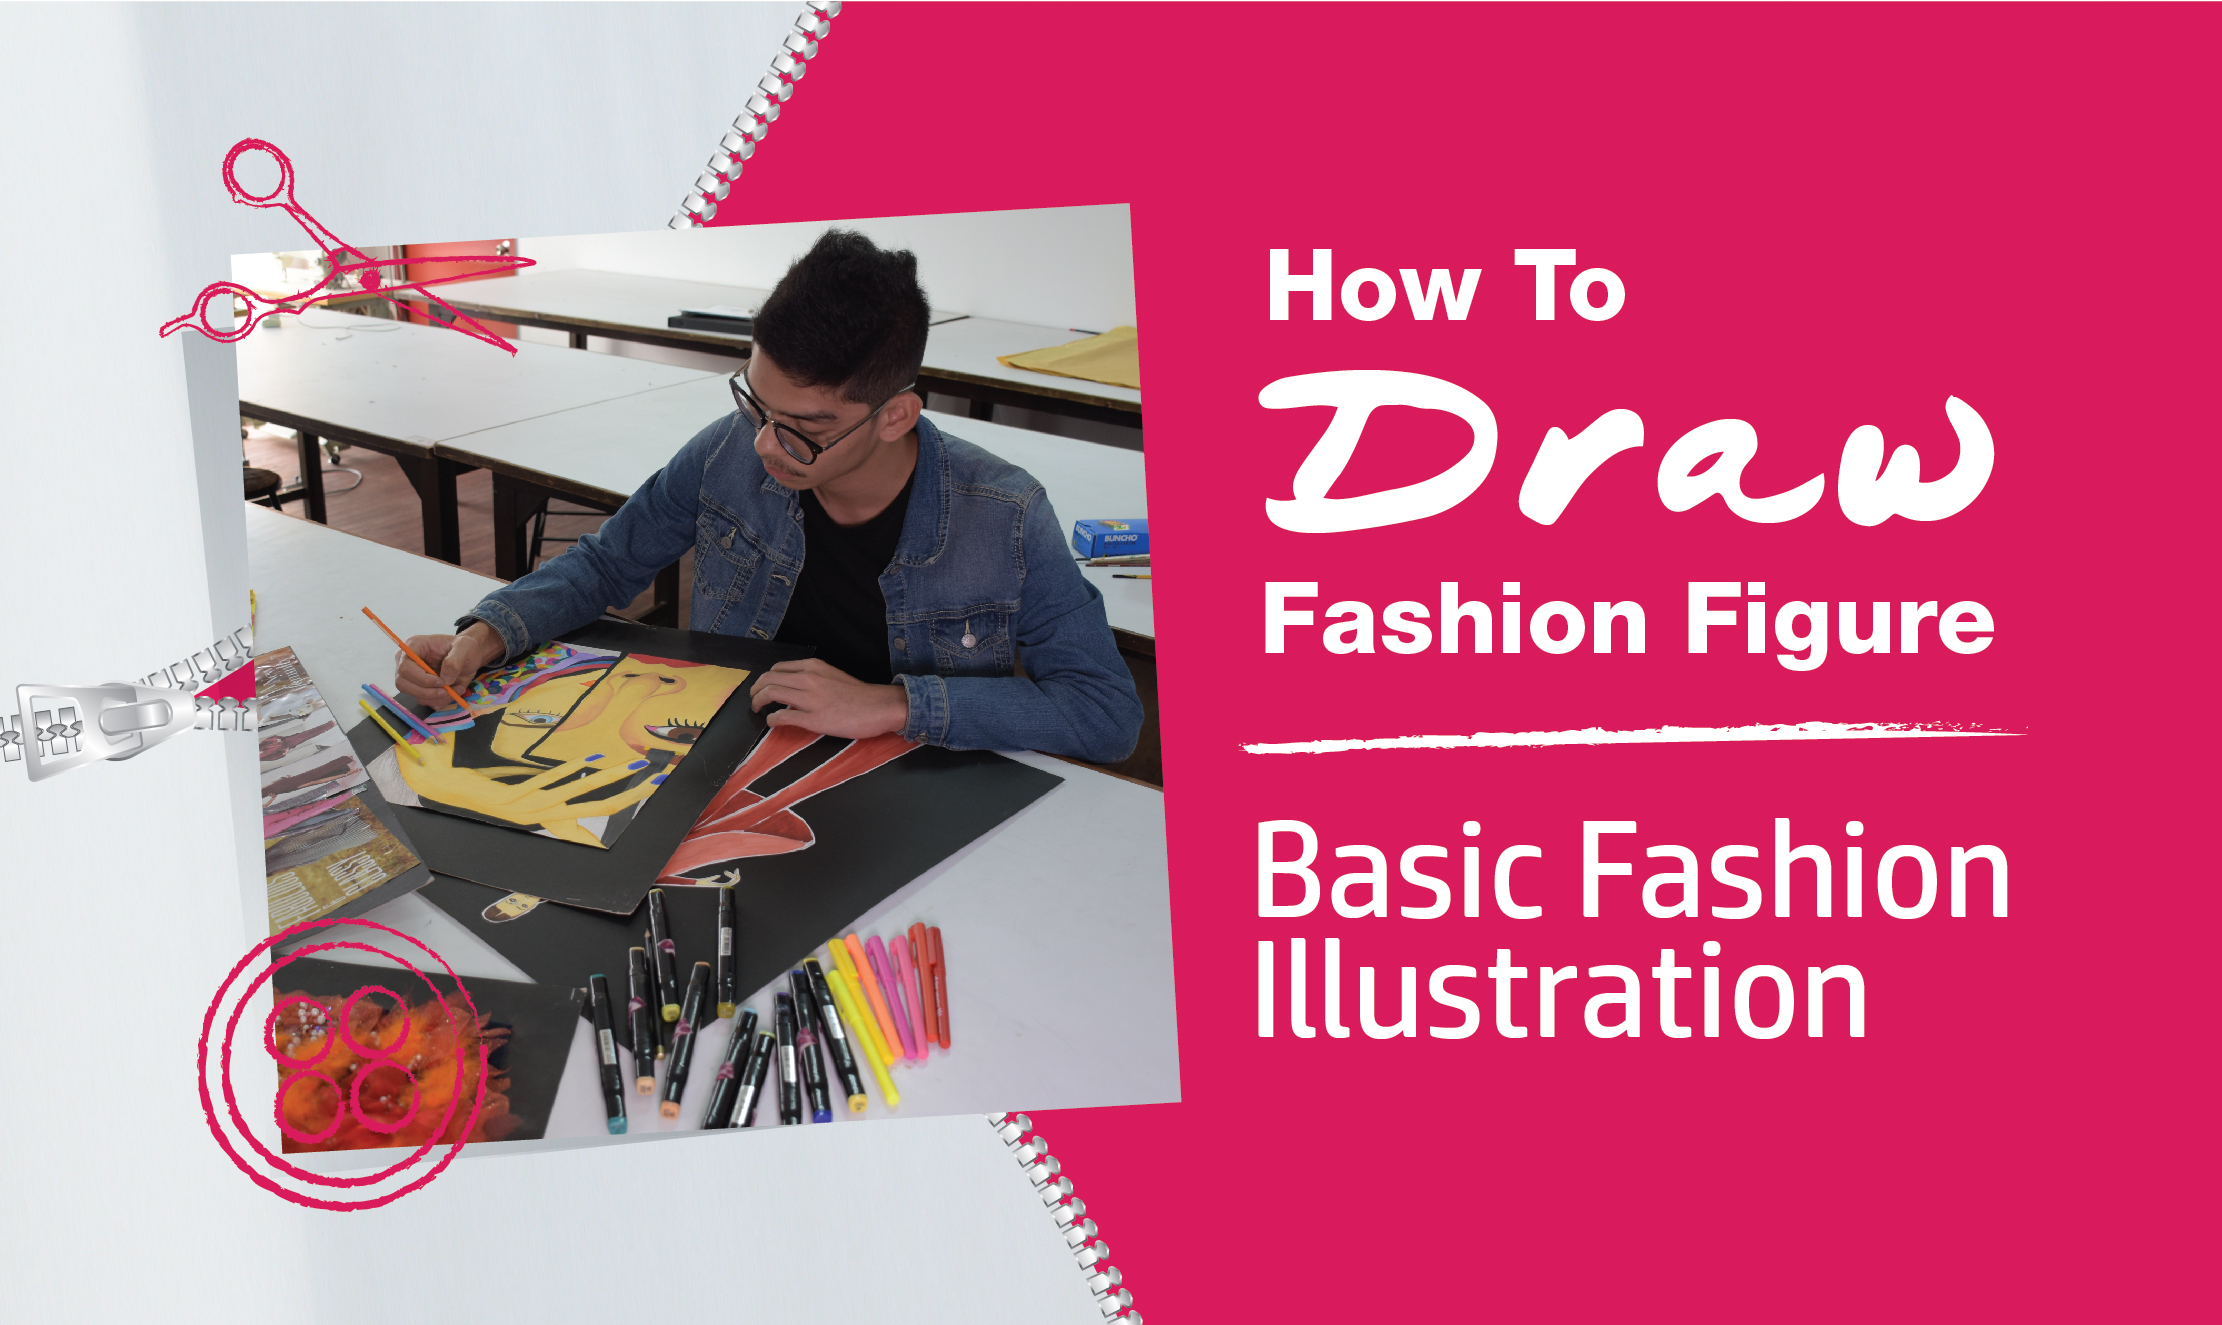 Basic Fashion Illustration